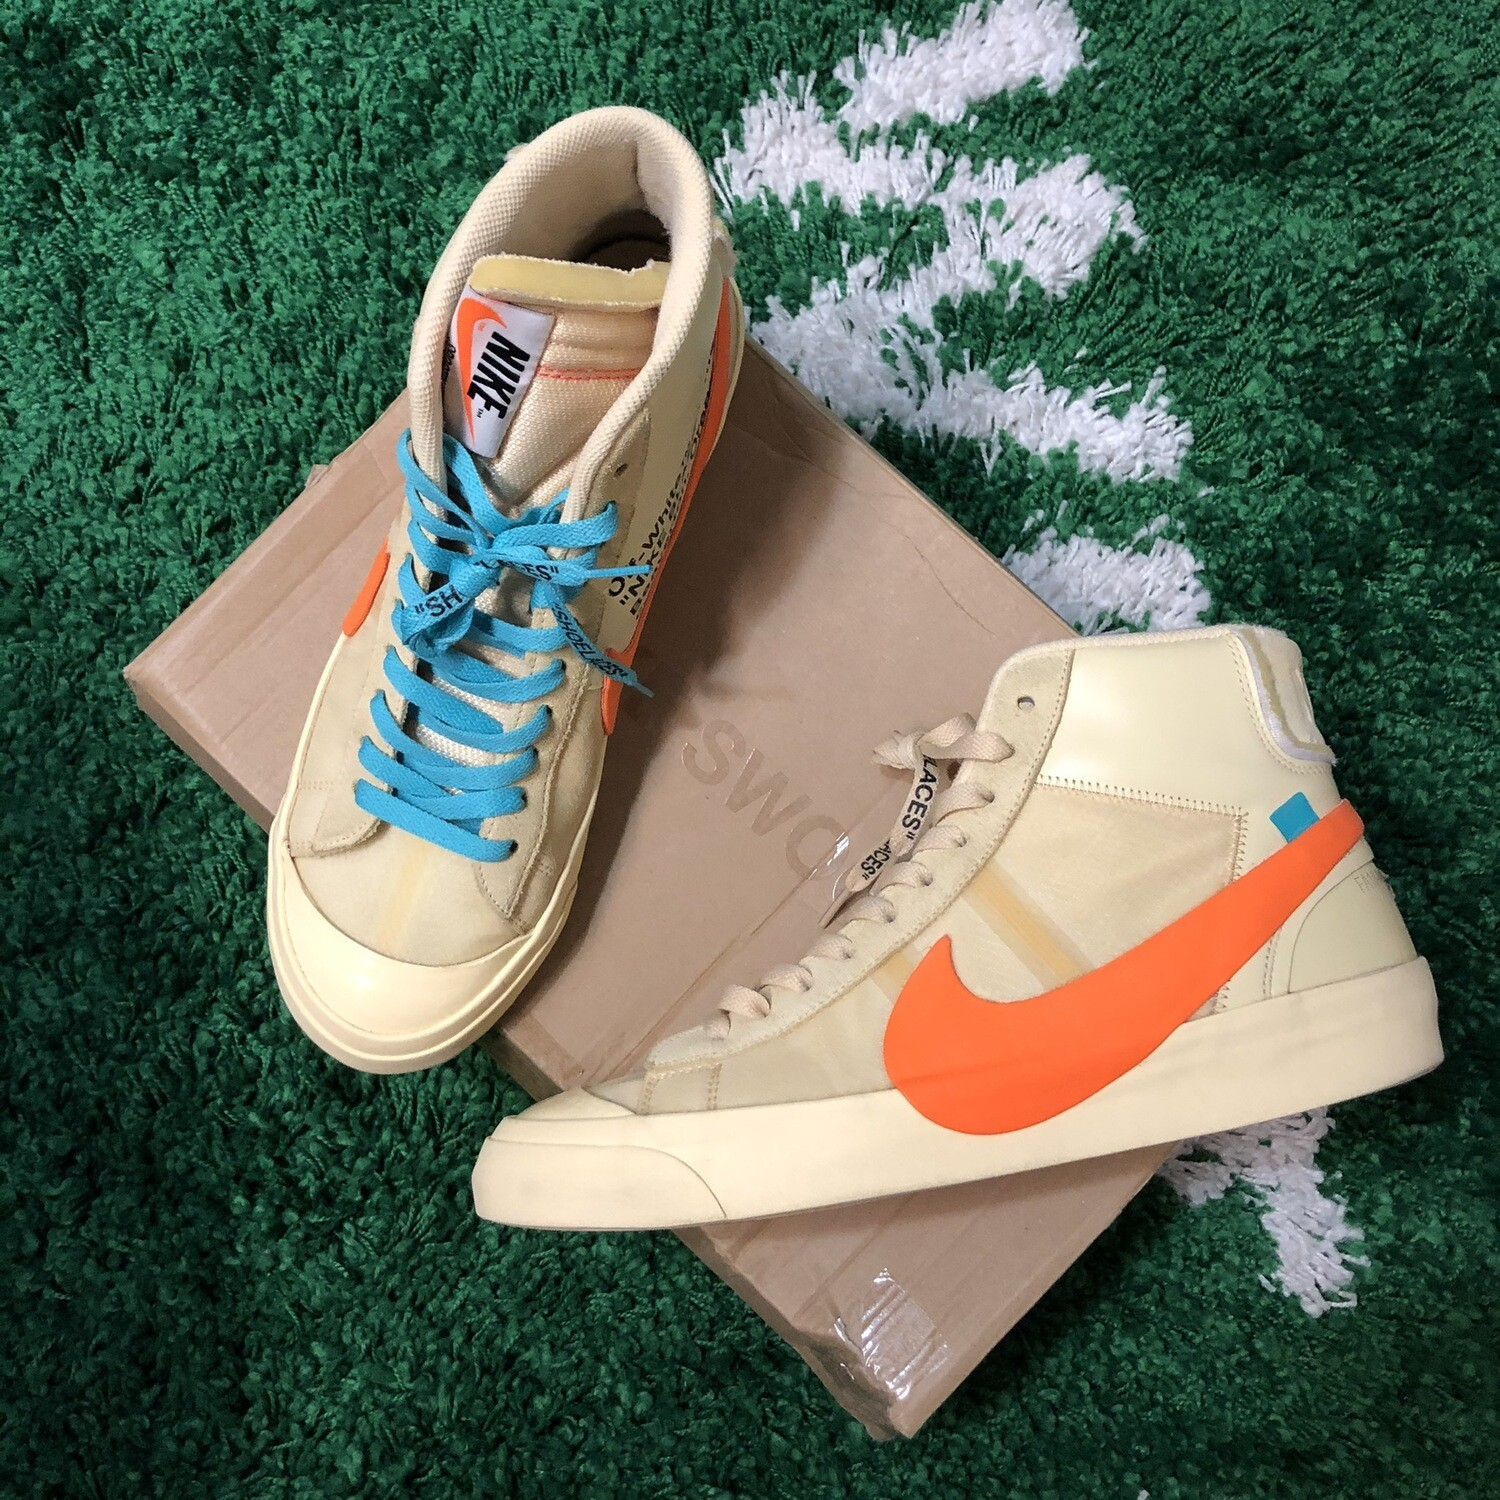 Nike Off-White Hallows Eve Blazer Size 11